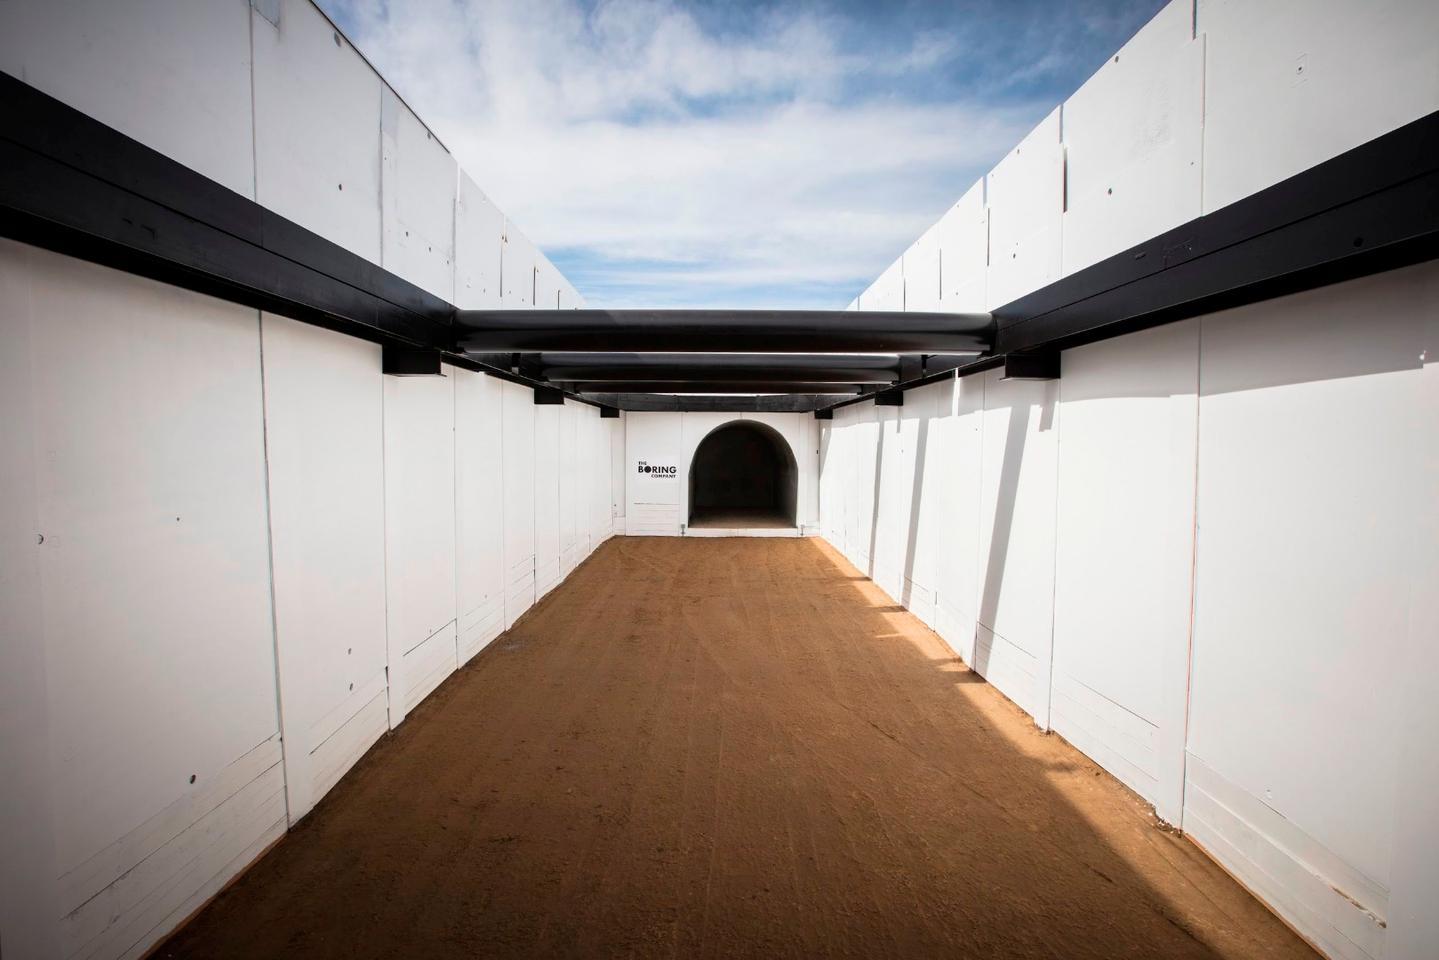 Entrance to The Boring Company's test tunnel